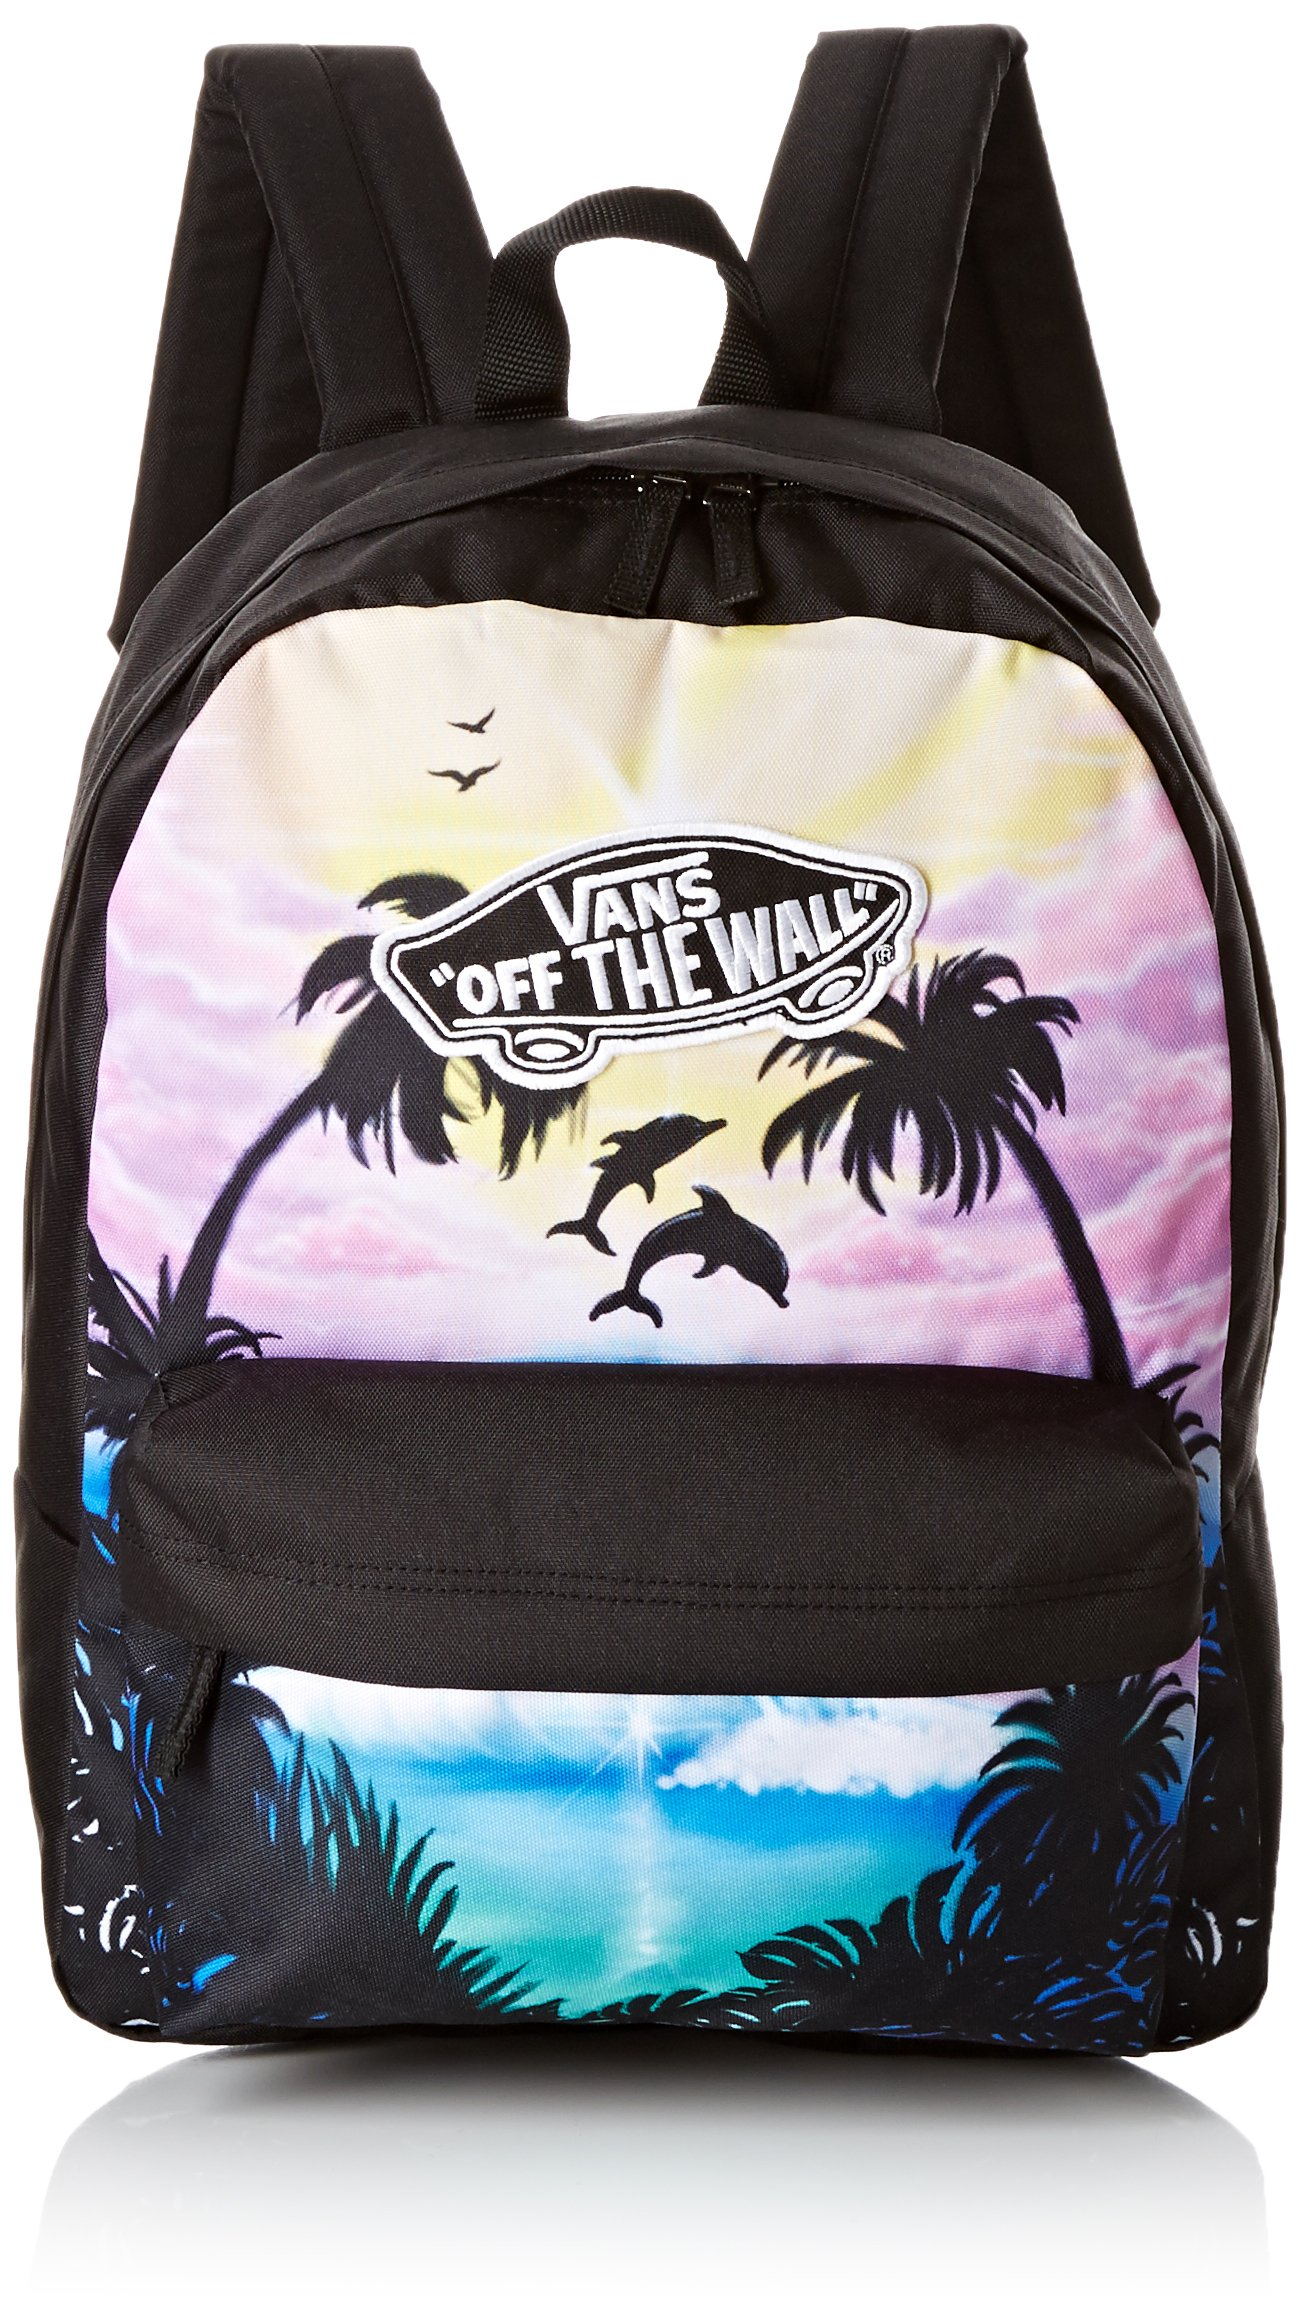 Details about Vans Women's Realm Backpack Palm Tree Dolphin Black